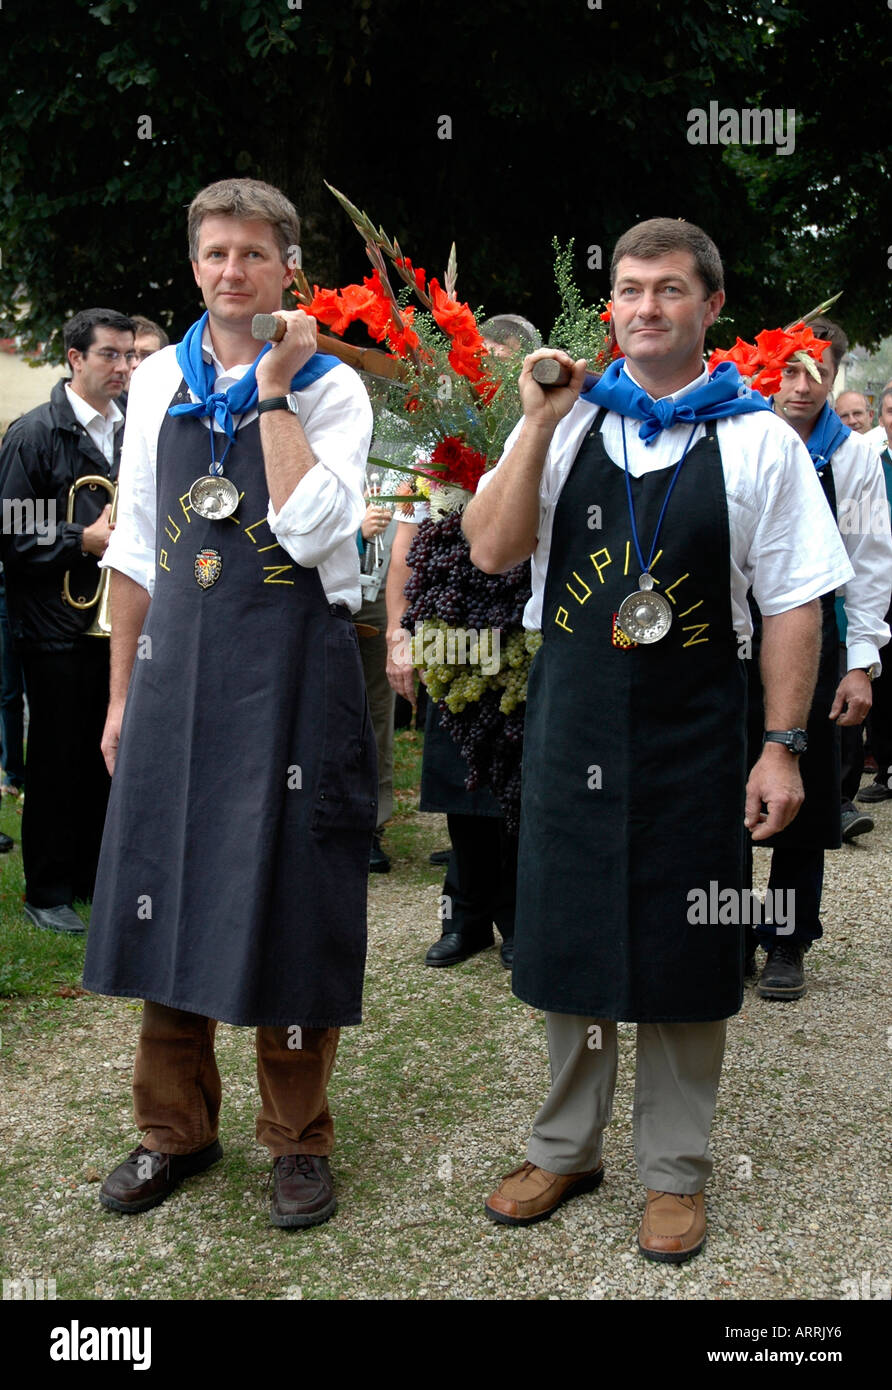 In Pupillin's annual wine festival, or biou, in the French Jura, strong men parade with the traditional huge bunch Stock Photo